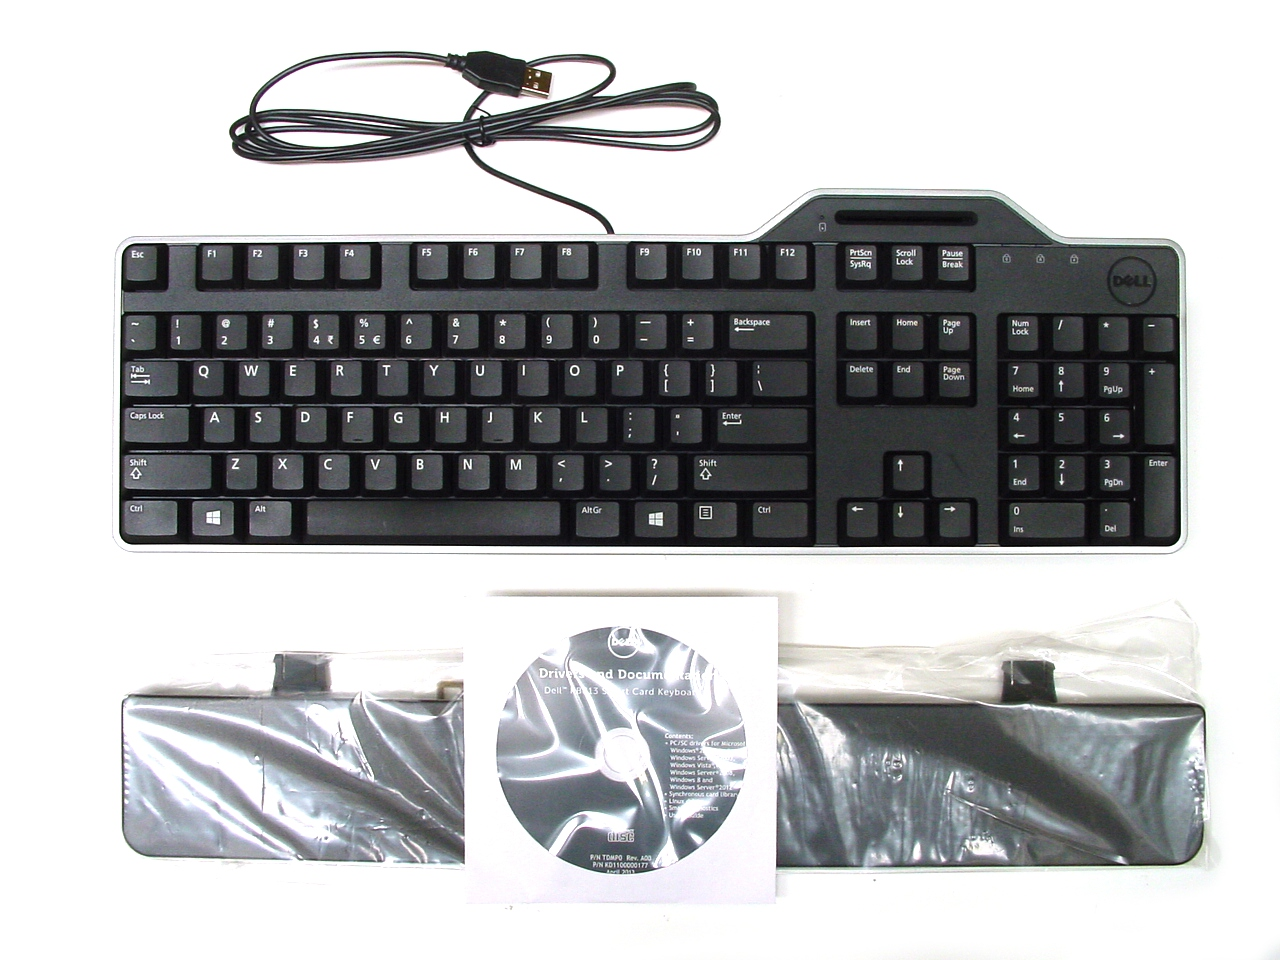 RT7D60 KEYBOARD DRIVER DOWNLOAD